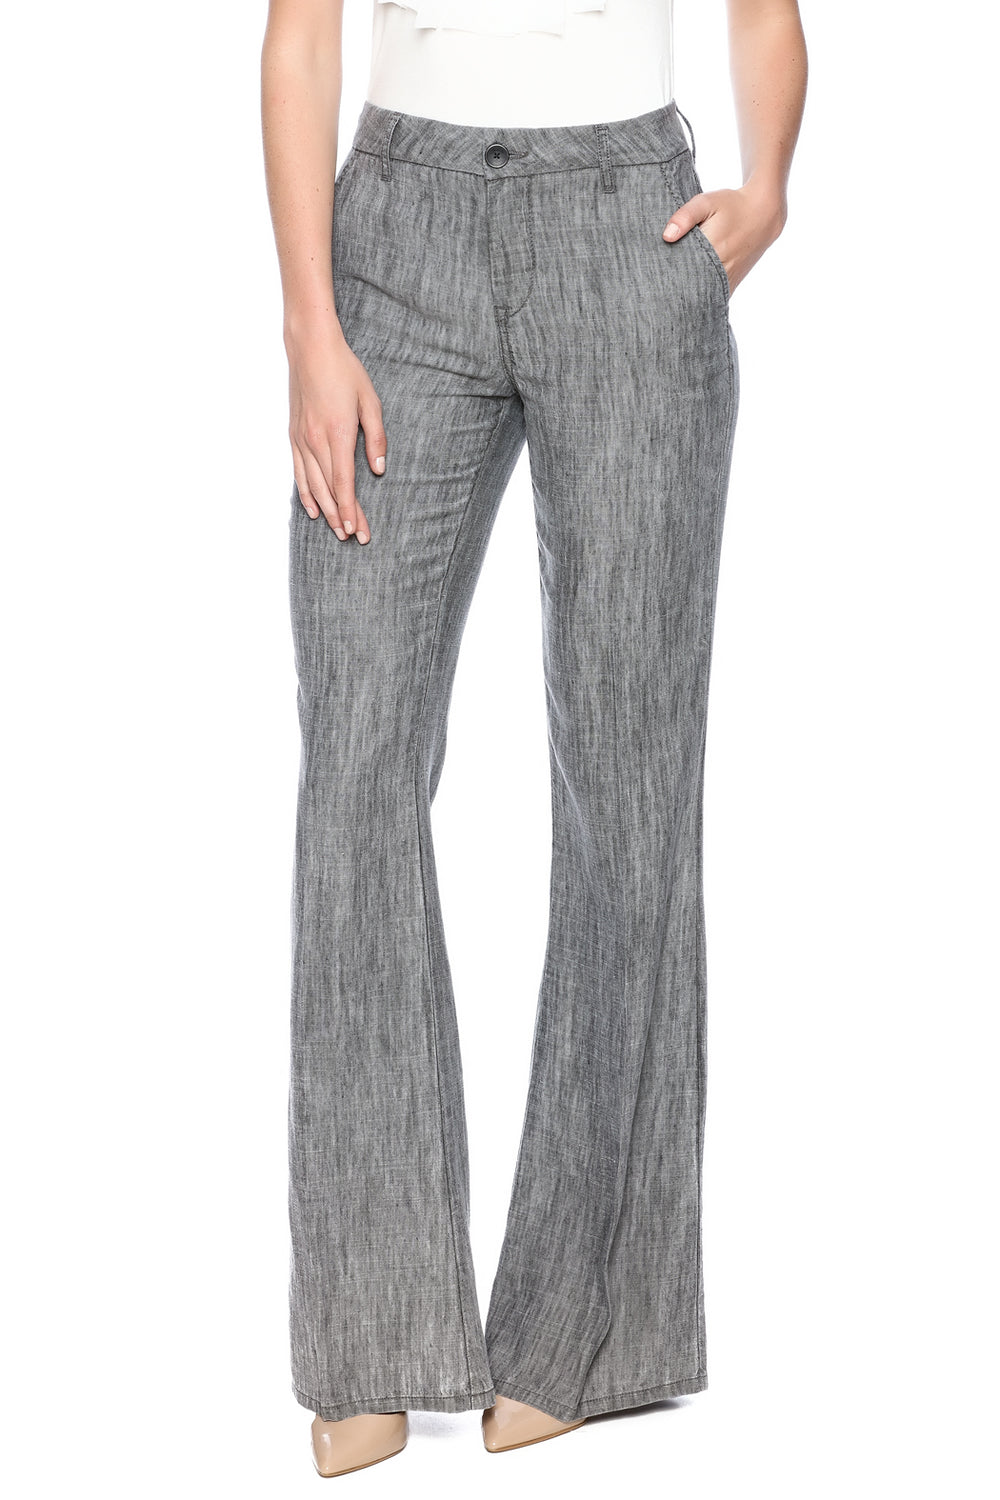 Level 99 - Light Grey Trouser Tanya Pant